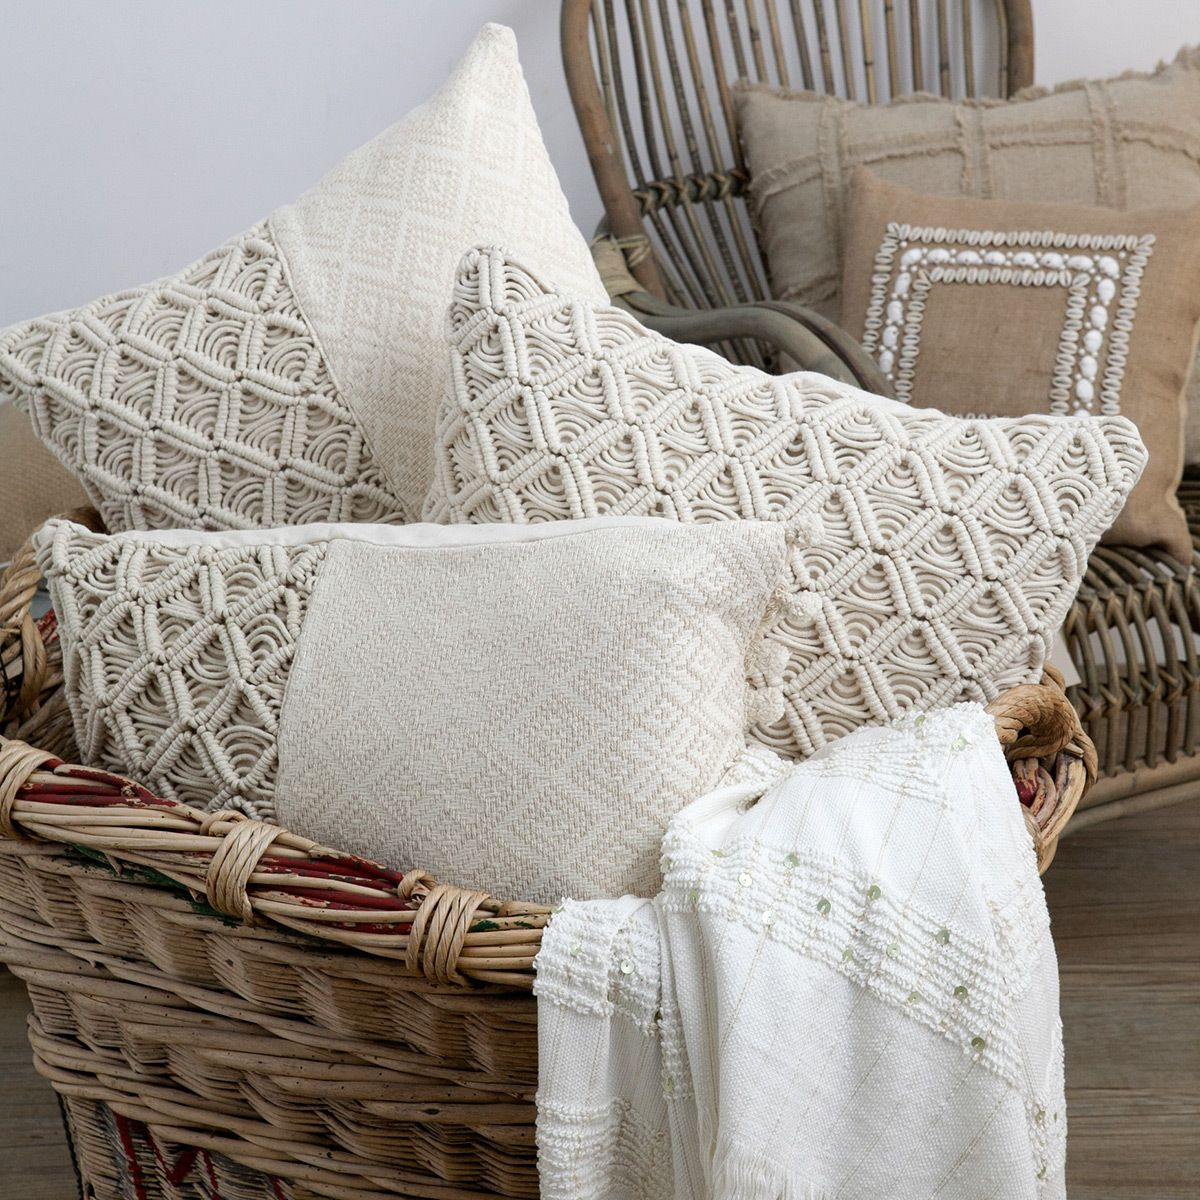 New Macrame Cushions Tribal Luxe Pinterest Macrame